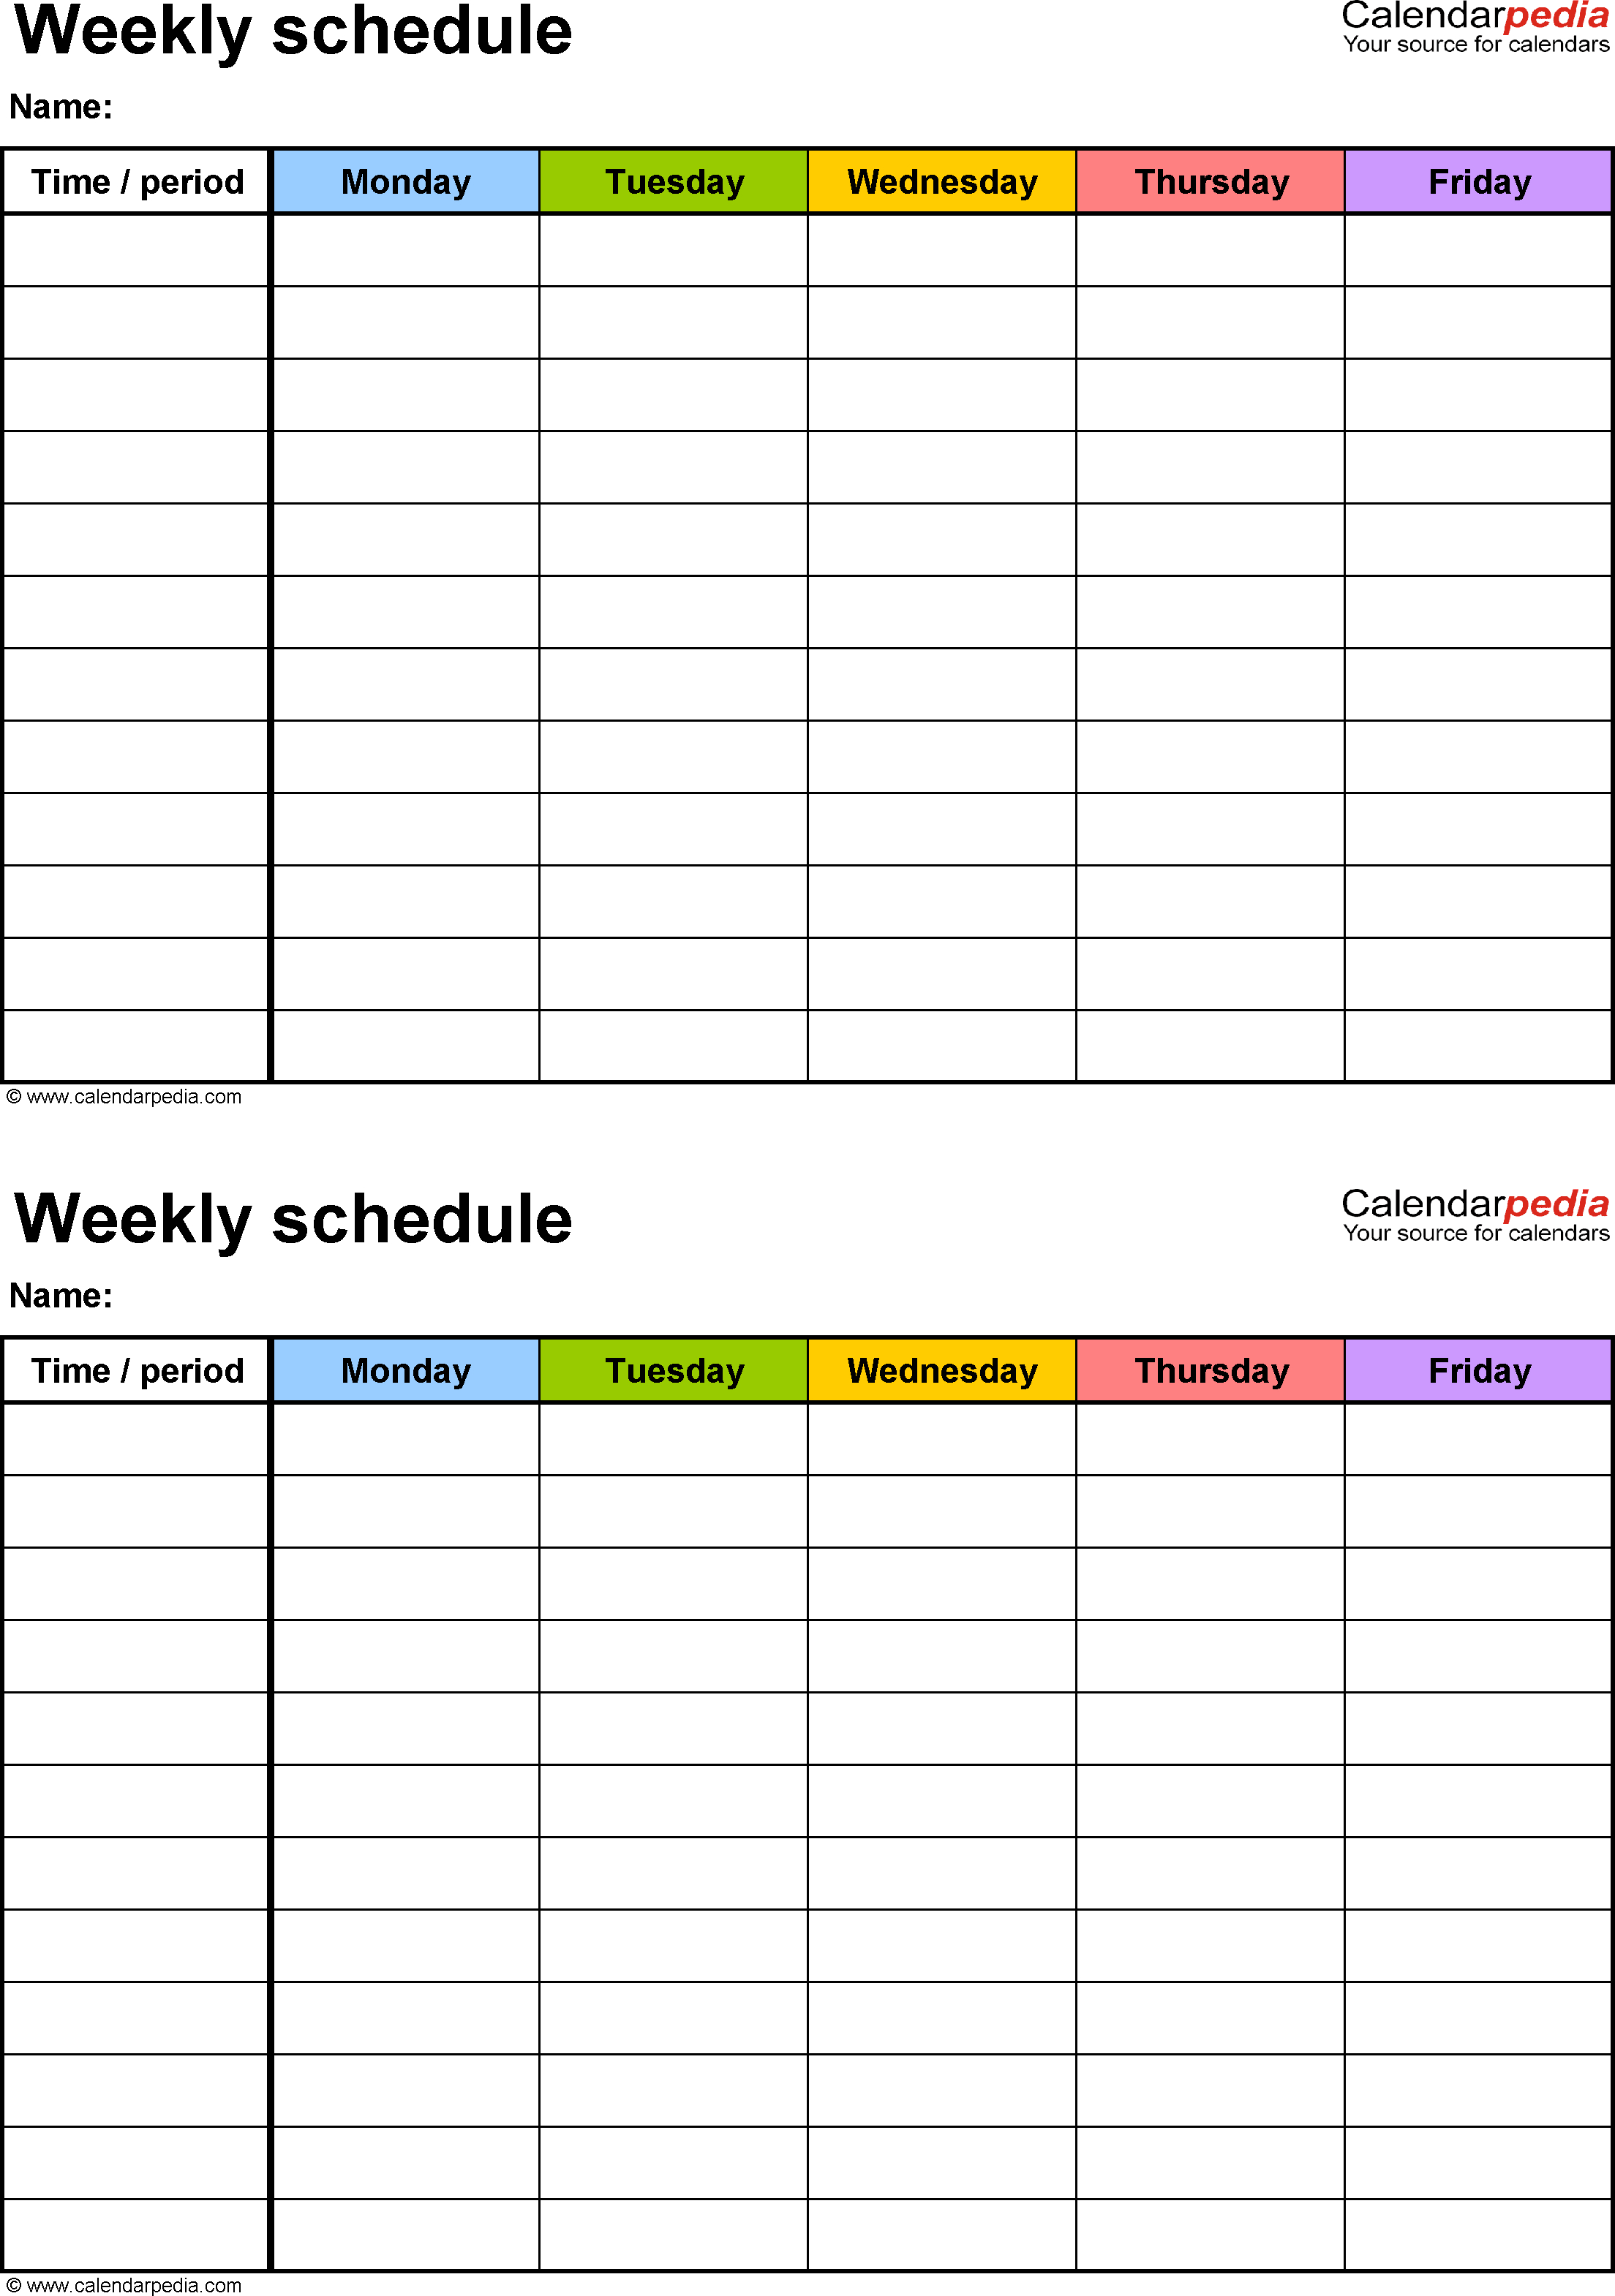 Free Weekly Schedule Templates For Word - 18 Templates with Monday Through Friday Blank Schedule Print Out